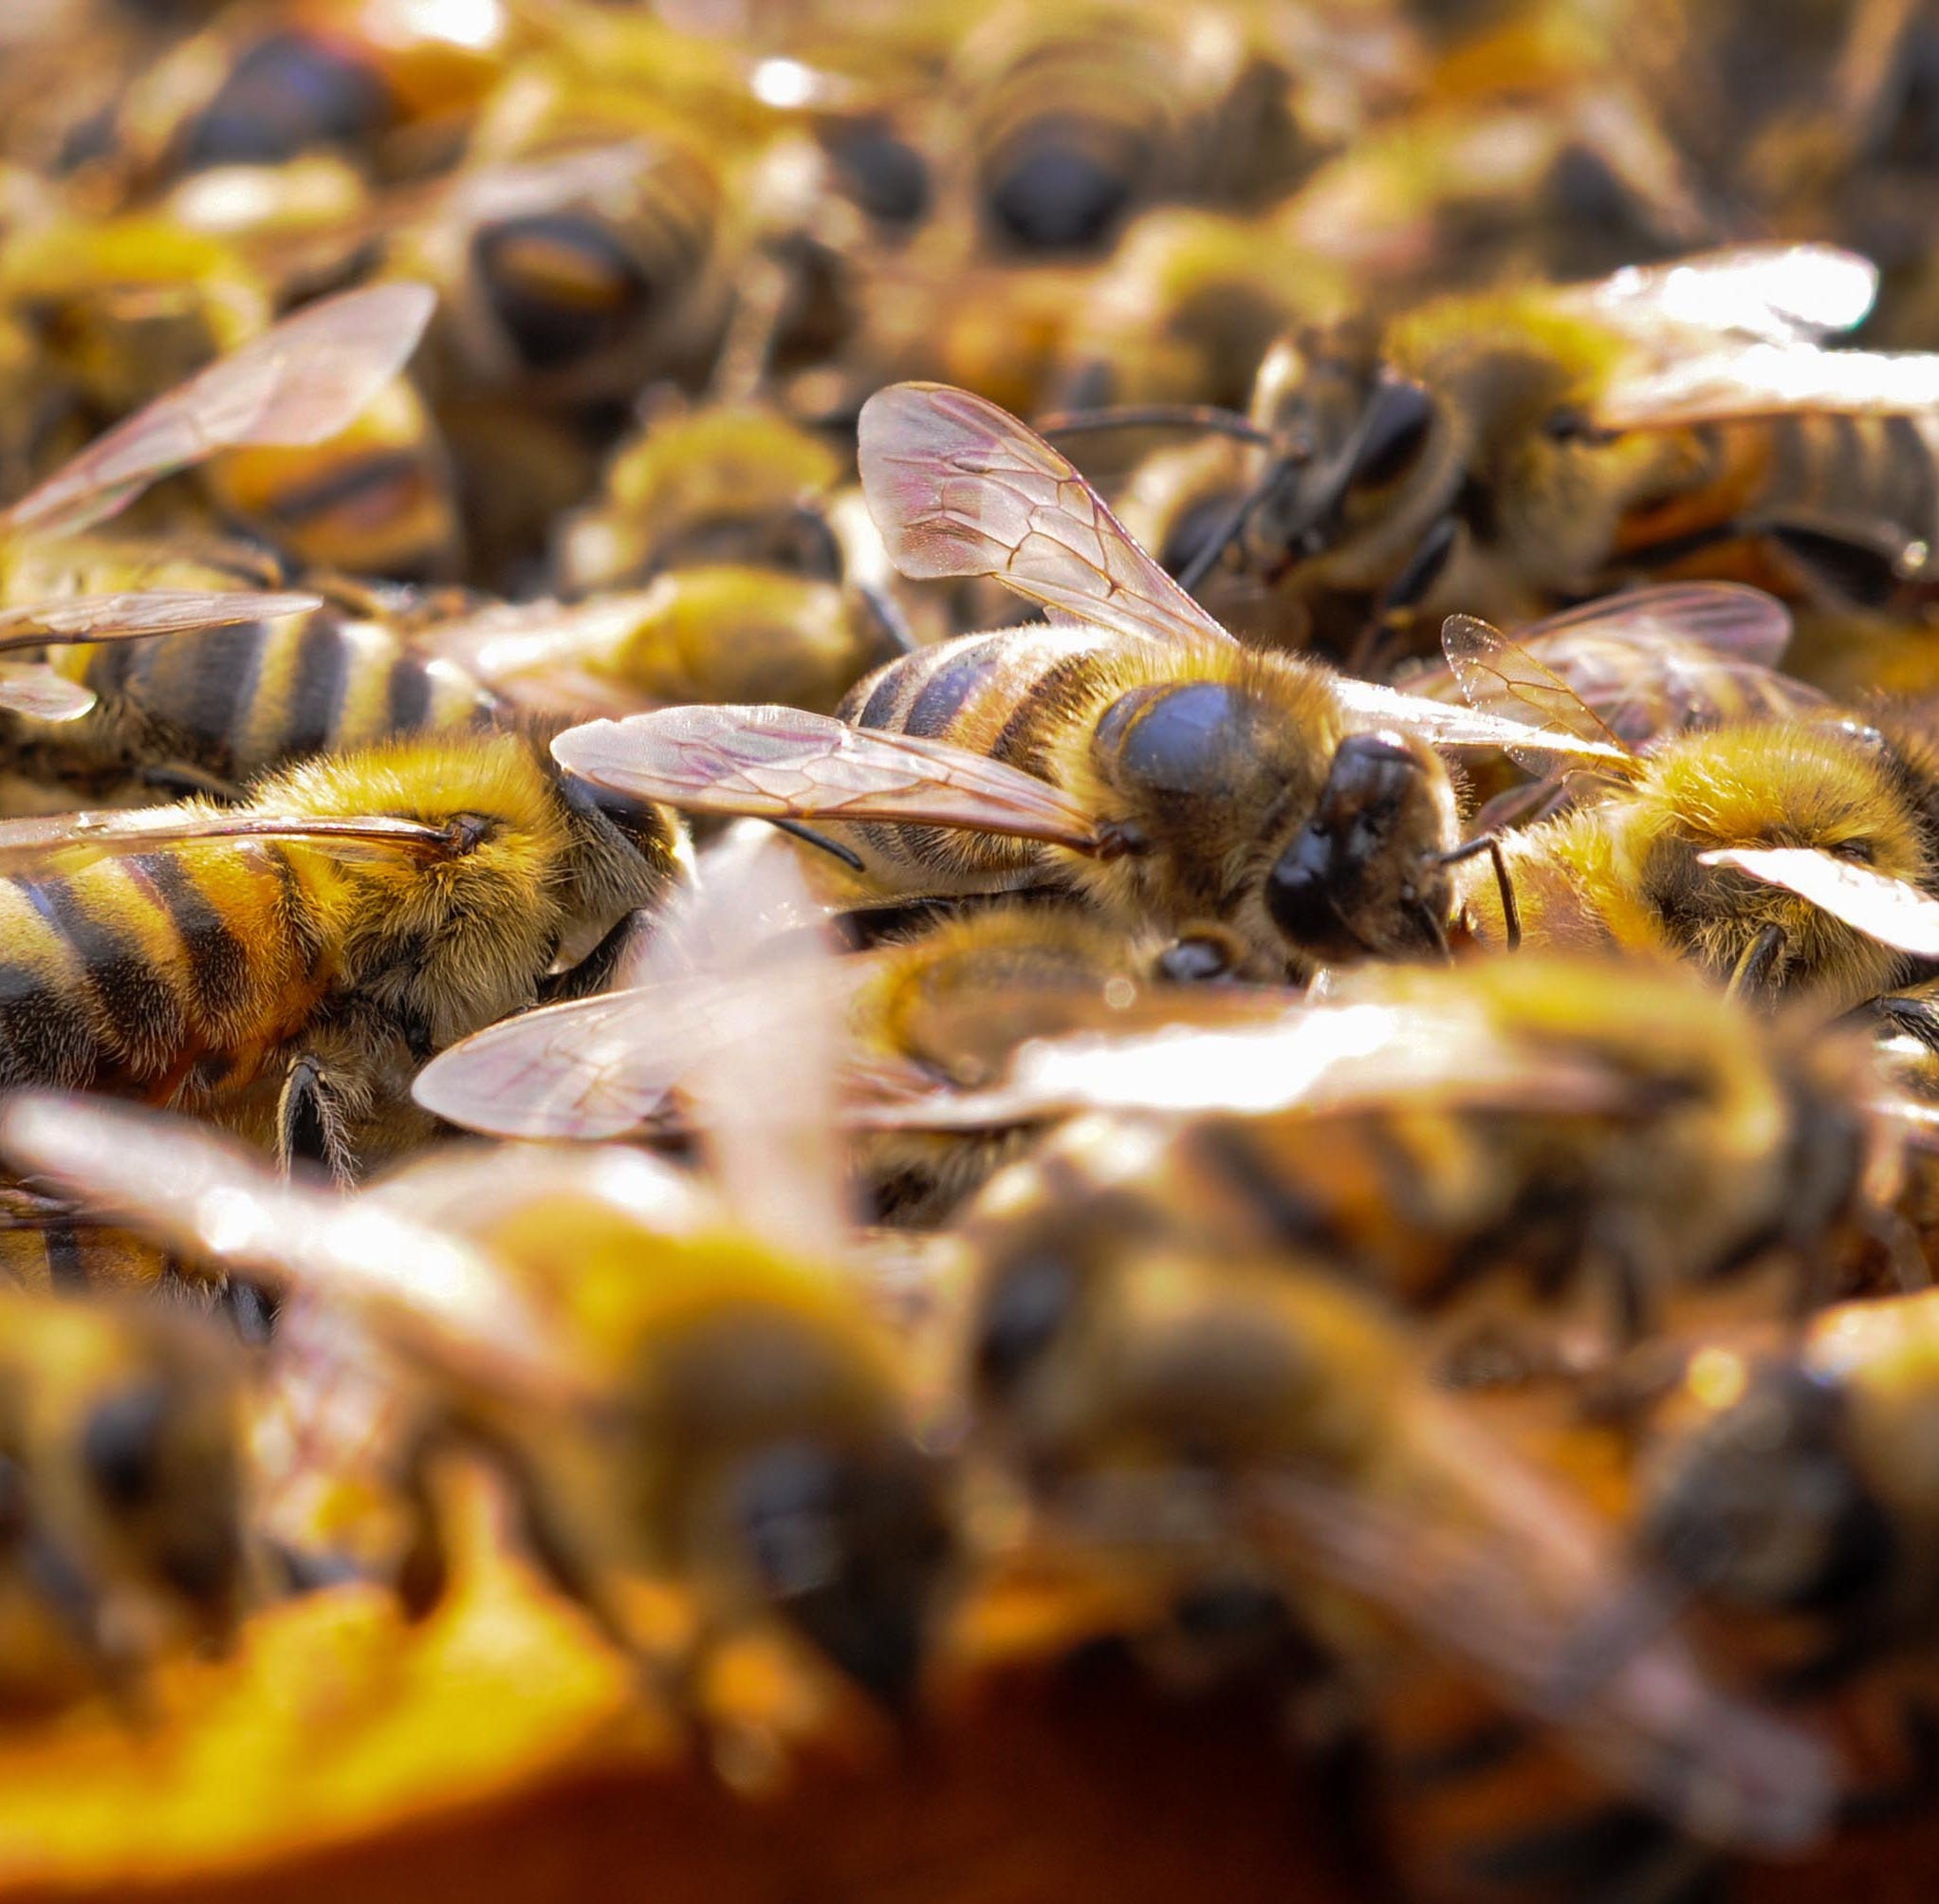 Report: Bee attack leaves two dogs dead